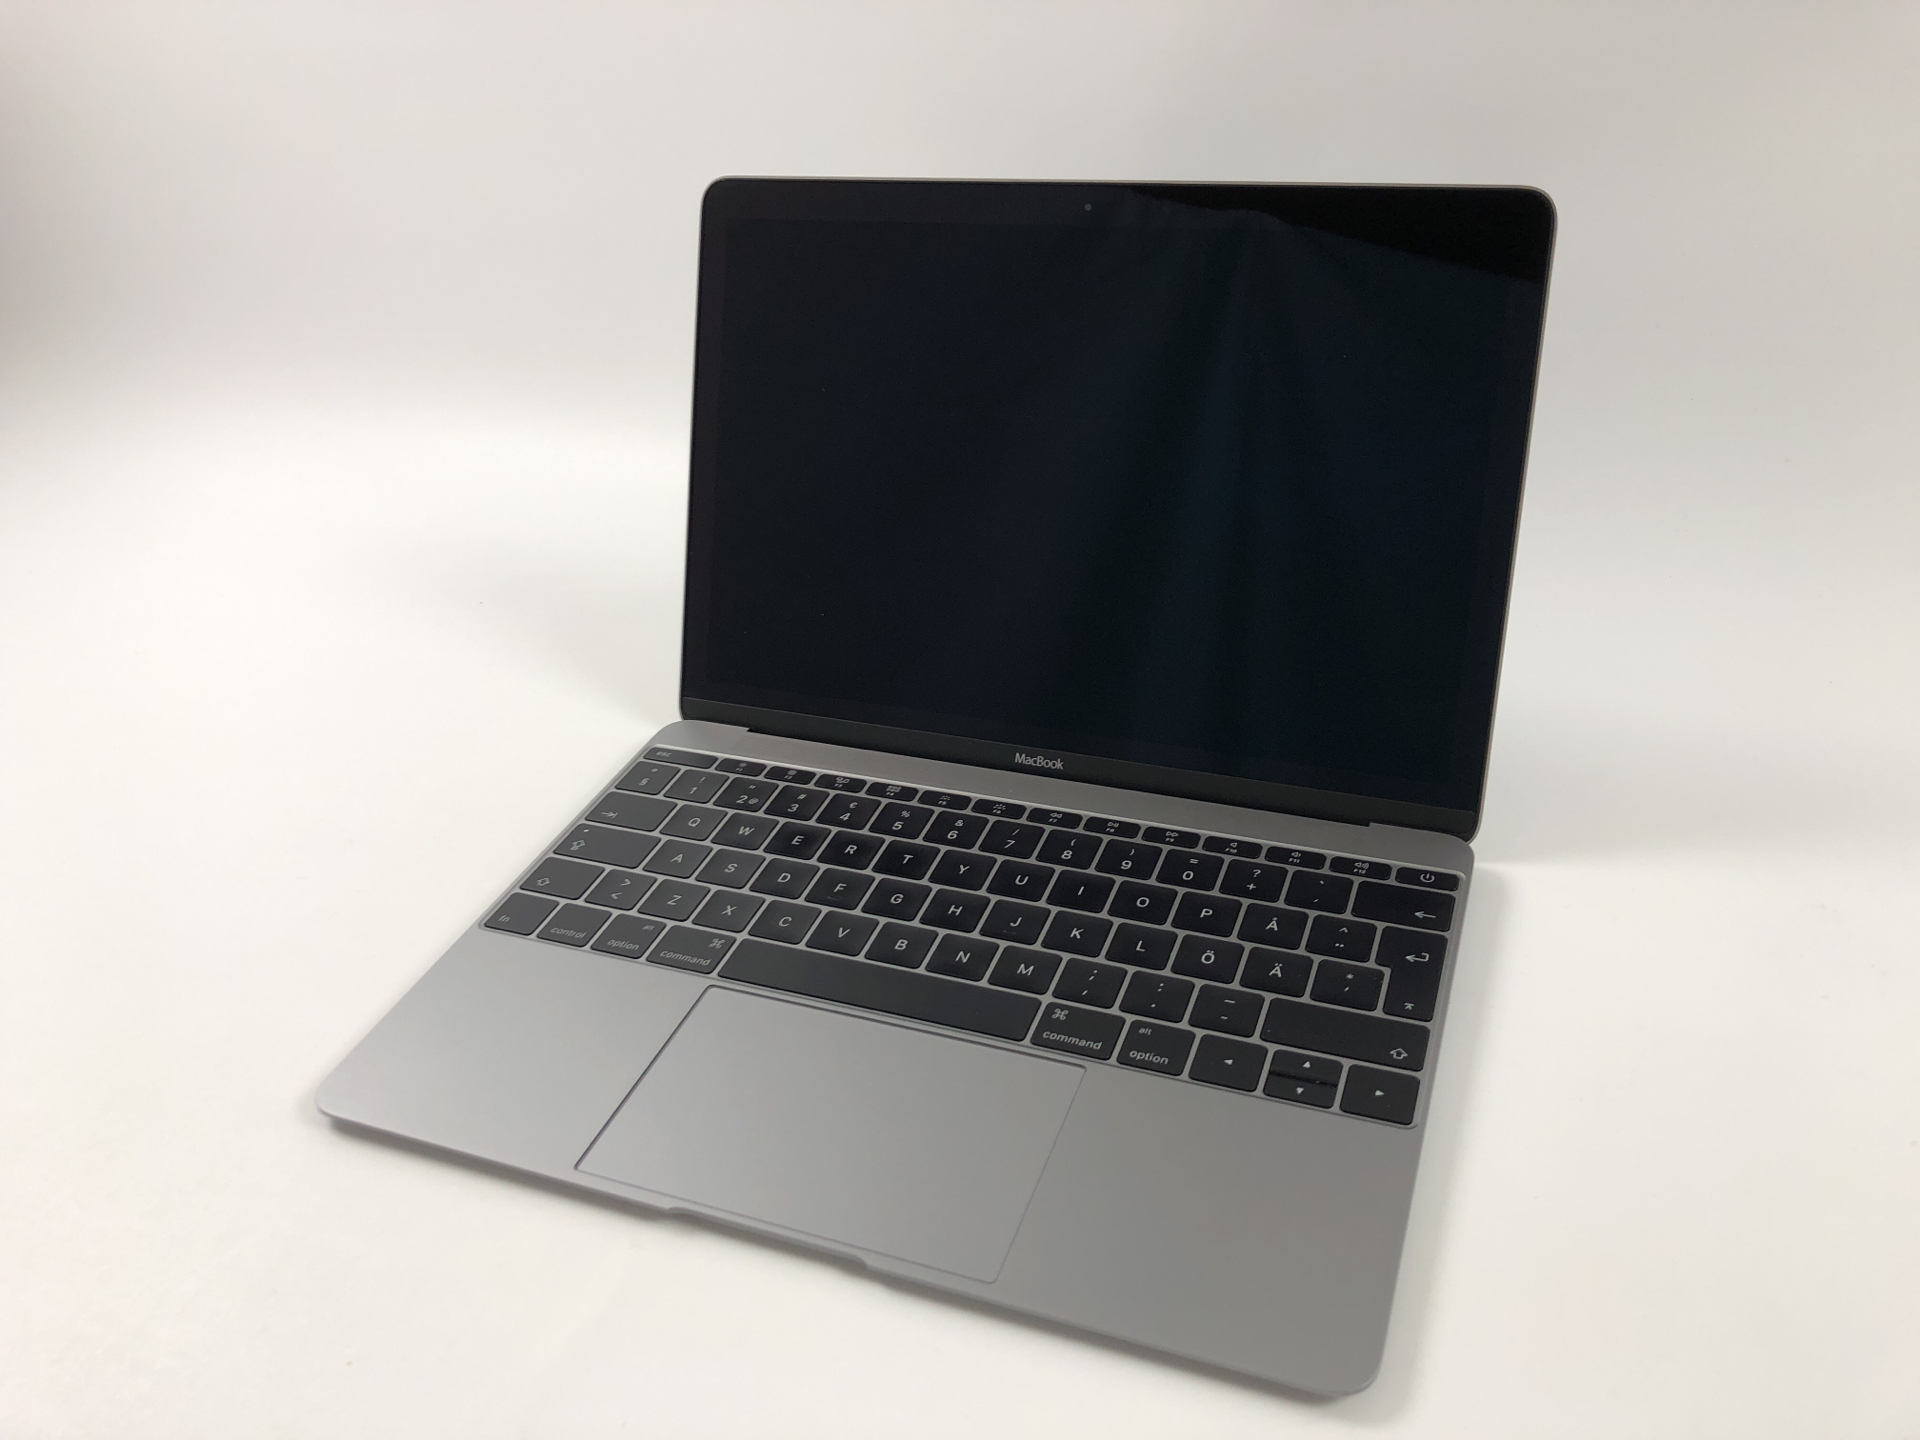 "MacBook 12"" Early 2015 (Intel Core M 1.3 GHz 8 GB RAM 512 GB SSD), Space Gray, Intel Core M 1.3 GHz, 8 GB RAM, 512 GB SSD, Kuva 1"